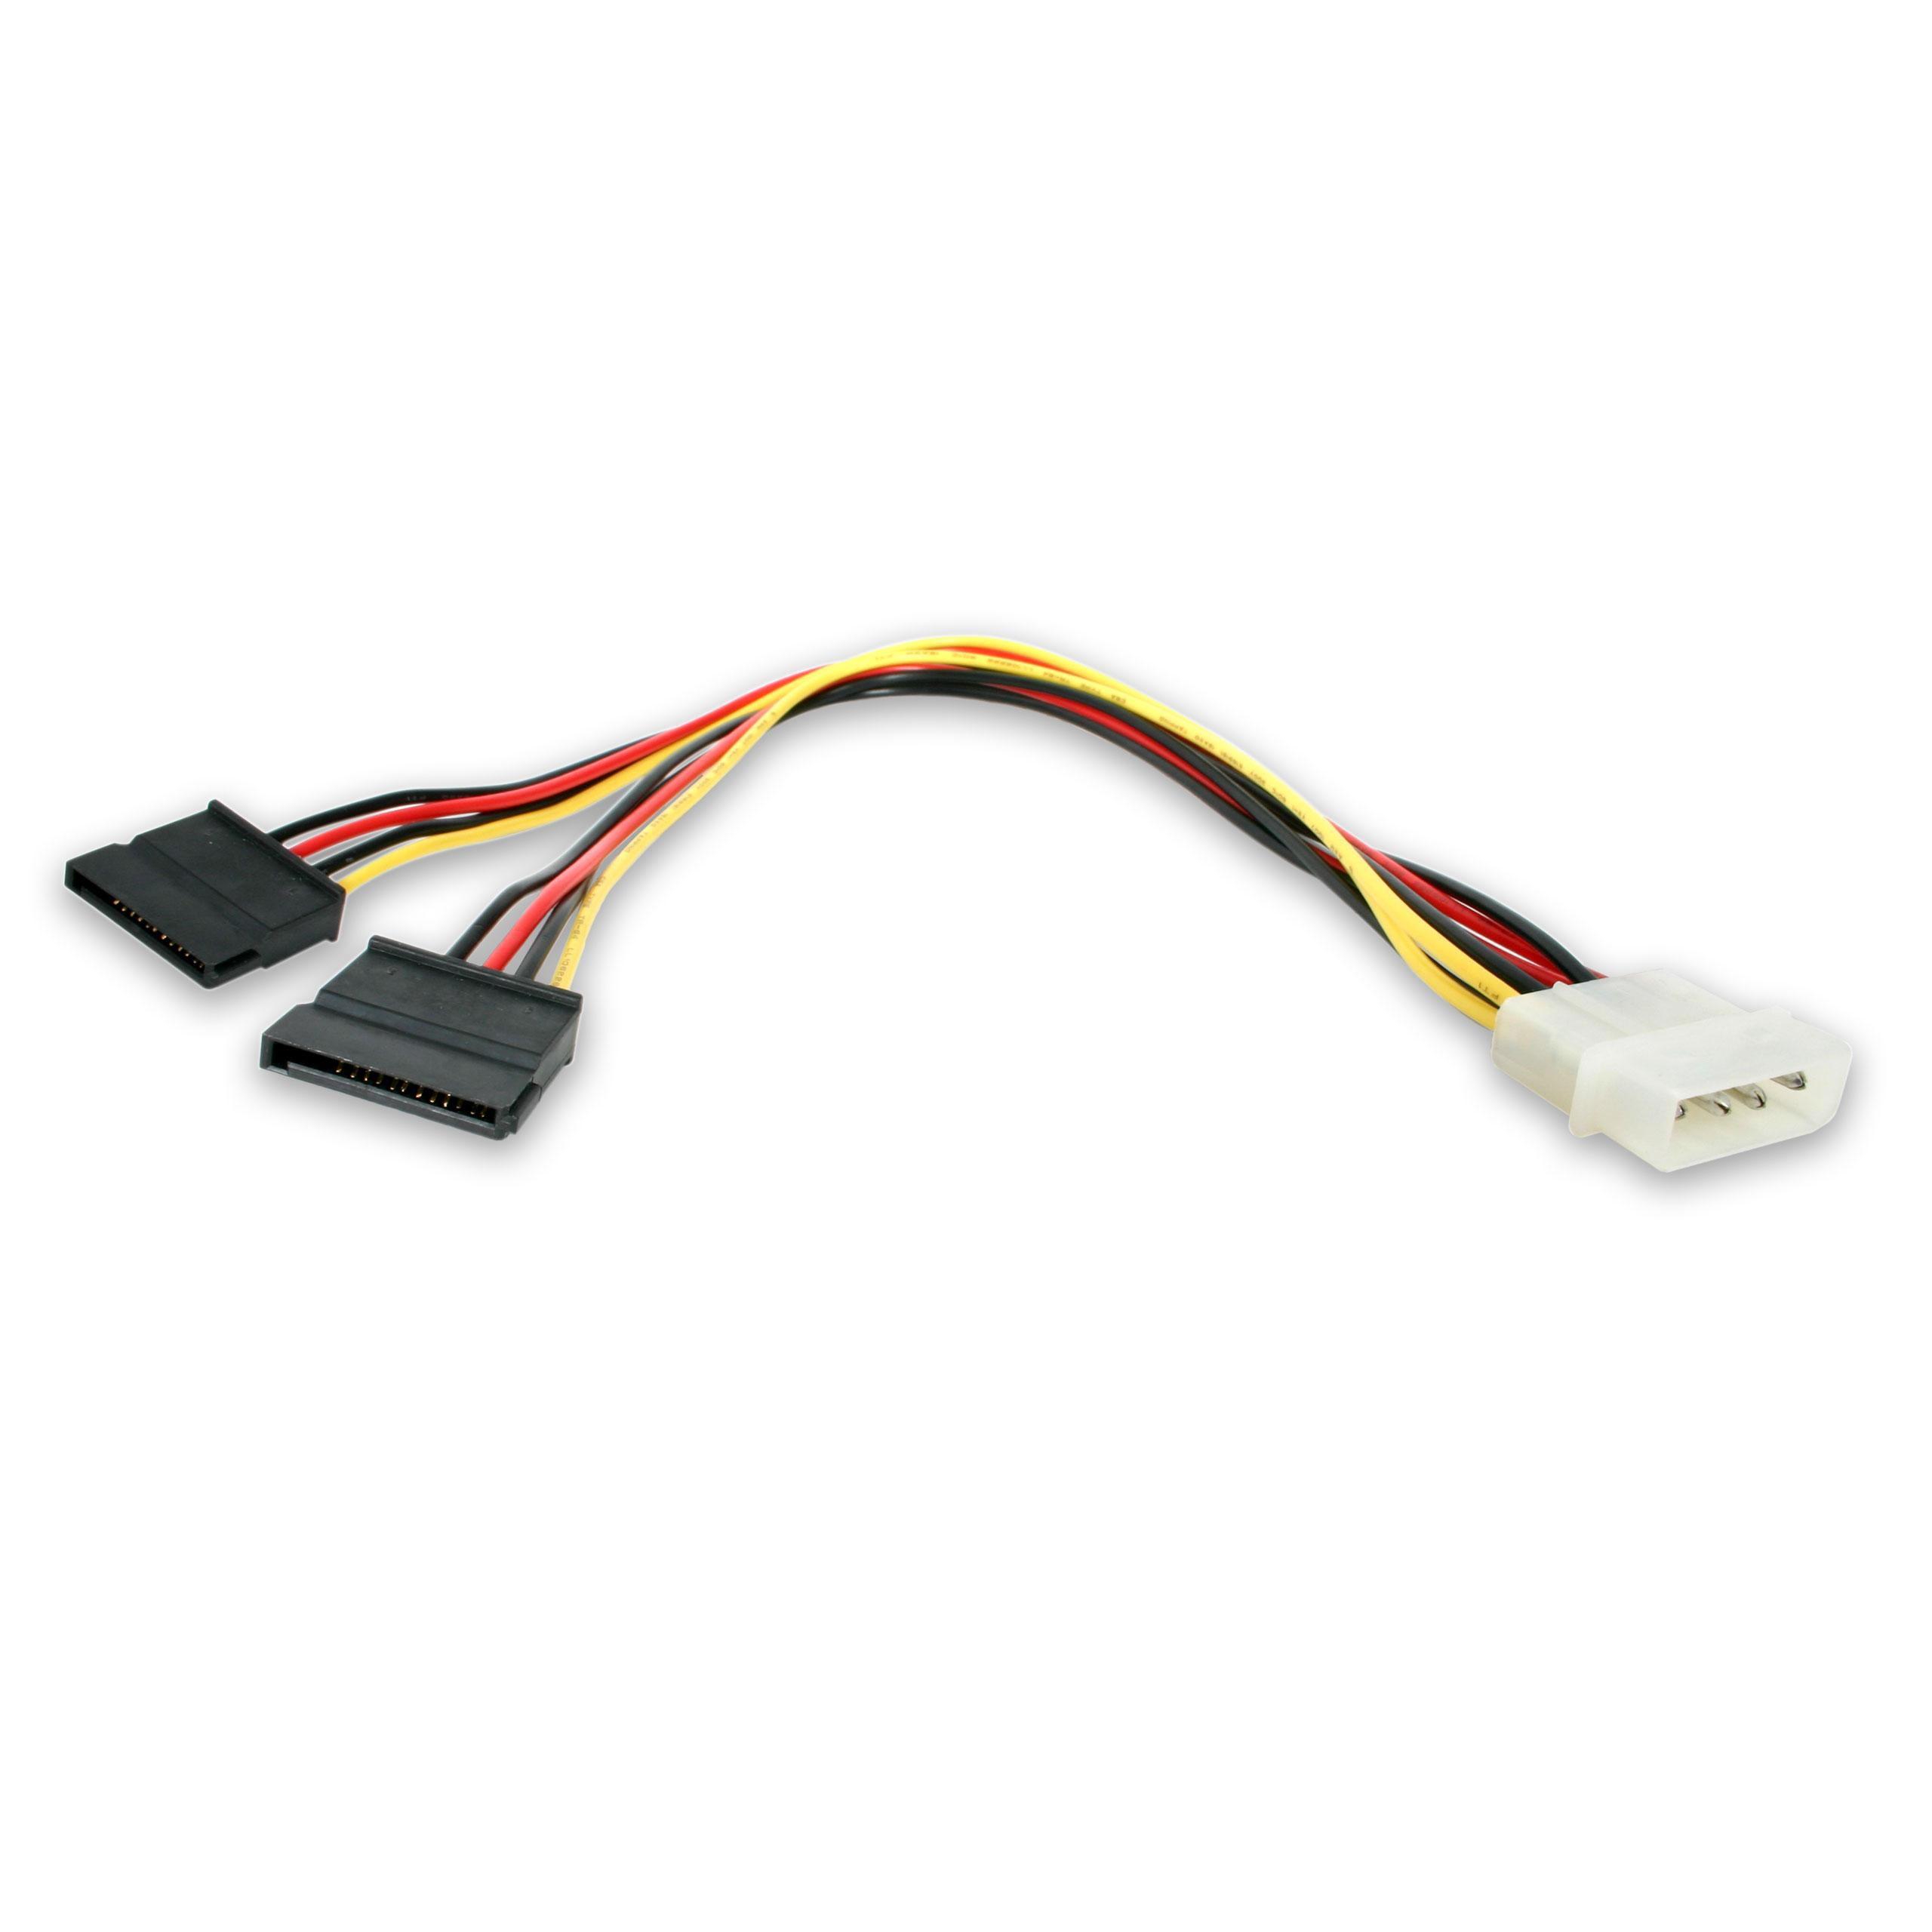 Sata Power Adapter Cable 1 Michaelieclark 50cm Micro To Data Drive From The Manufacturer